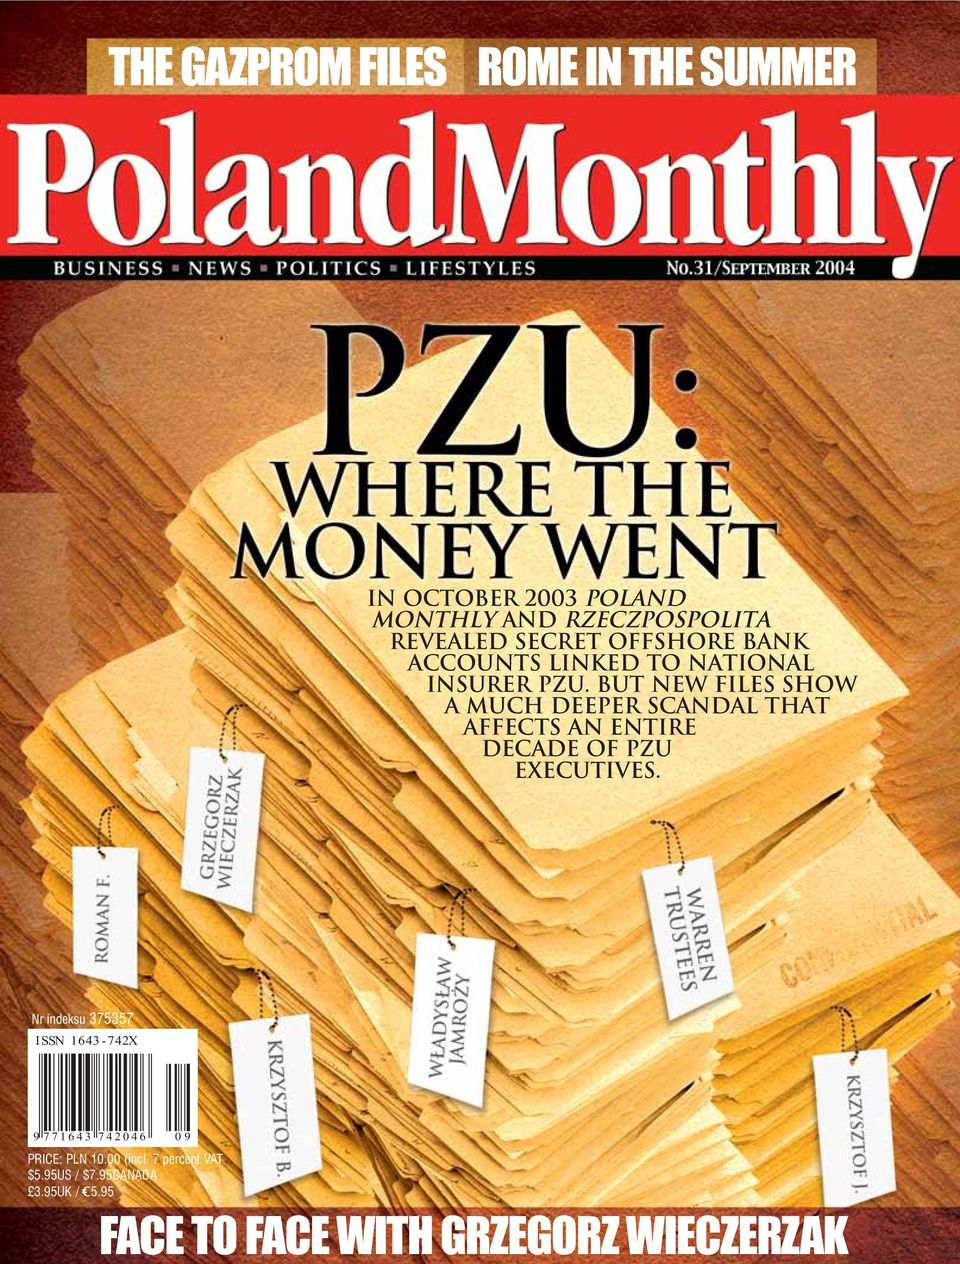 But new files show a much deeper scandal that affects an entire decade of PZU Executives.